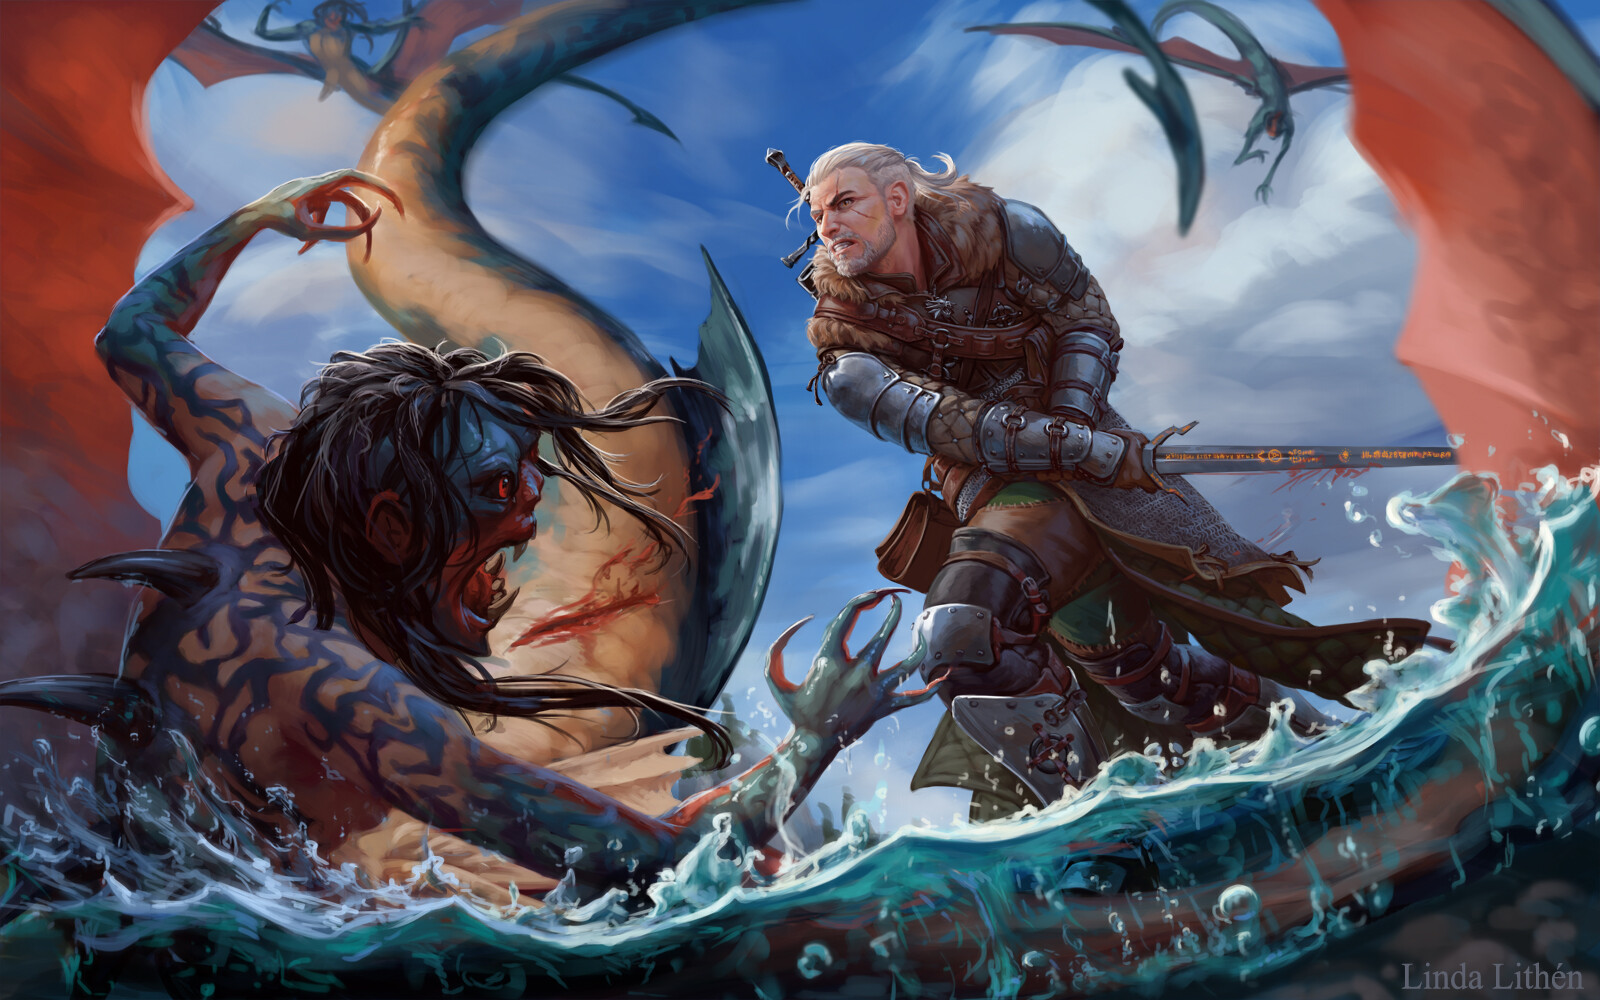 by Linda Lithen - Witcher 3: Wild Hunt, the Арт